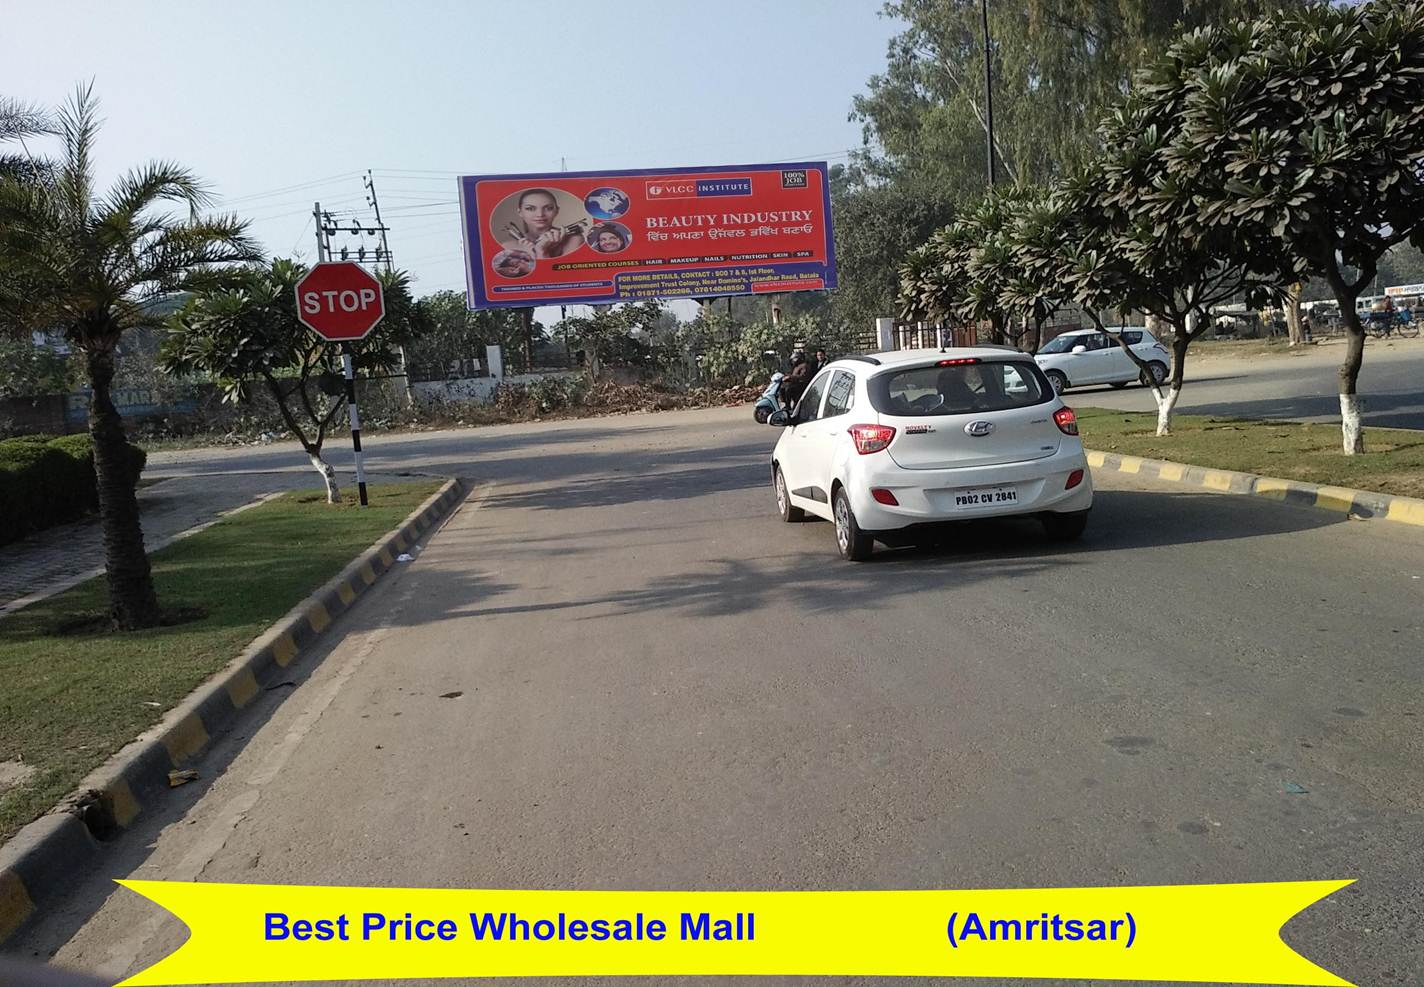 Outside Best Price Wholesale Shopping Mall, Amritsar